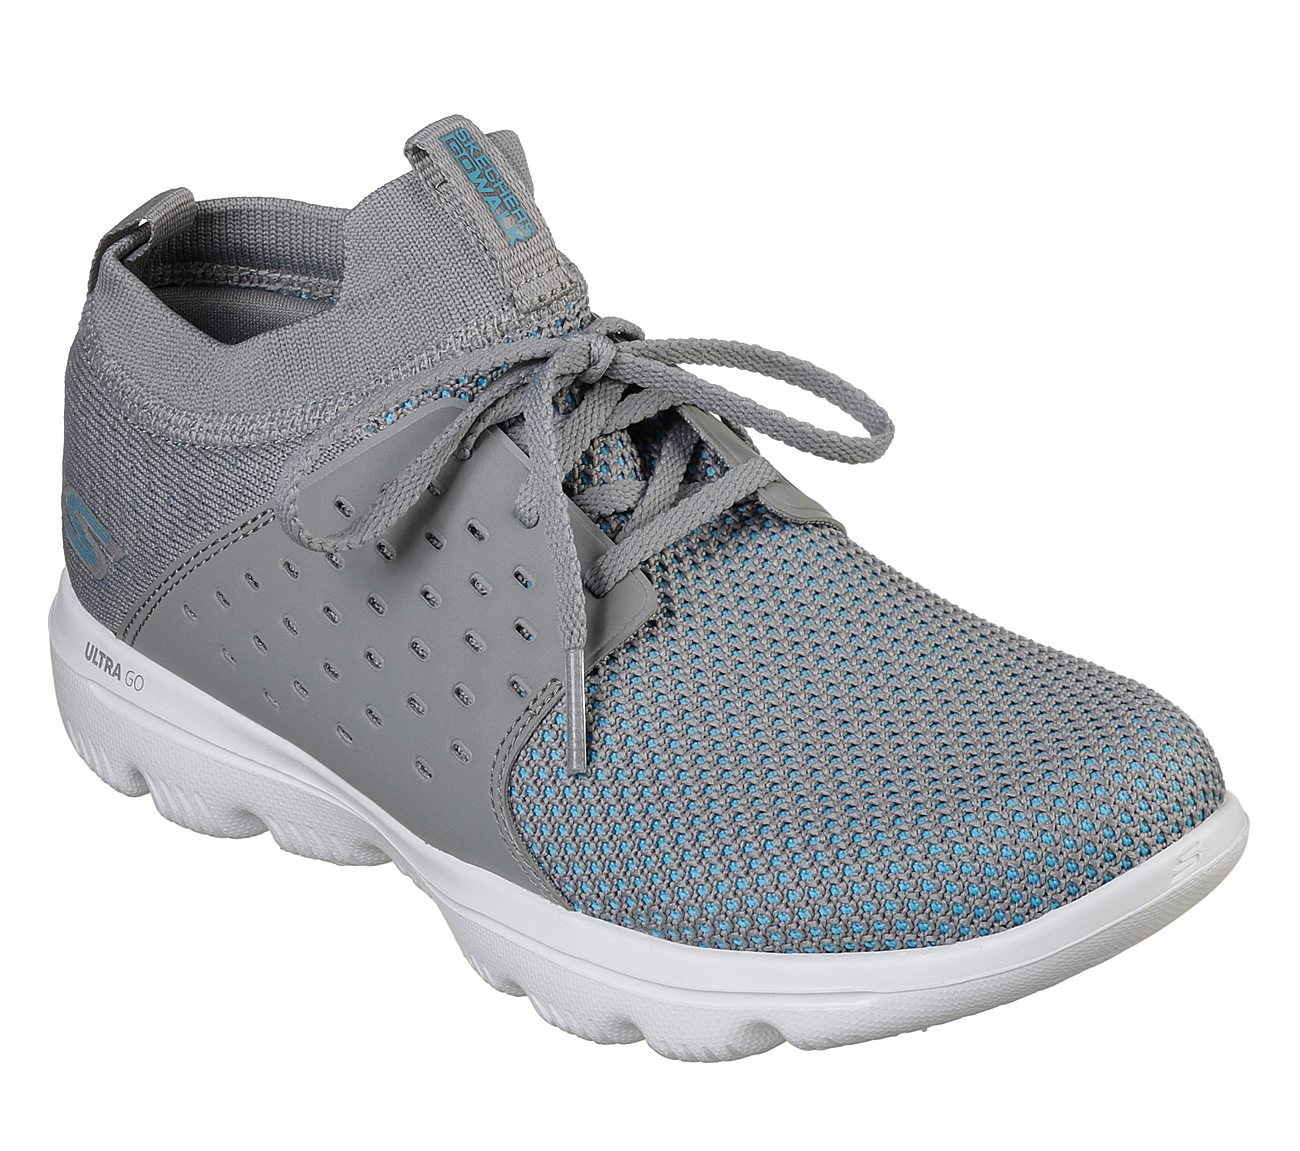 Skechers GOwalk Evolution Ultra - Turbo